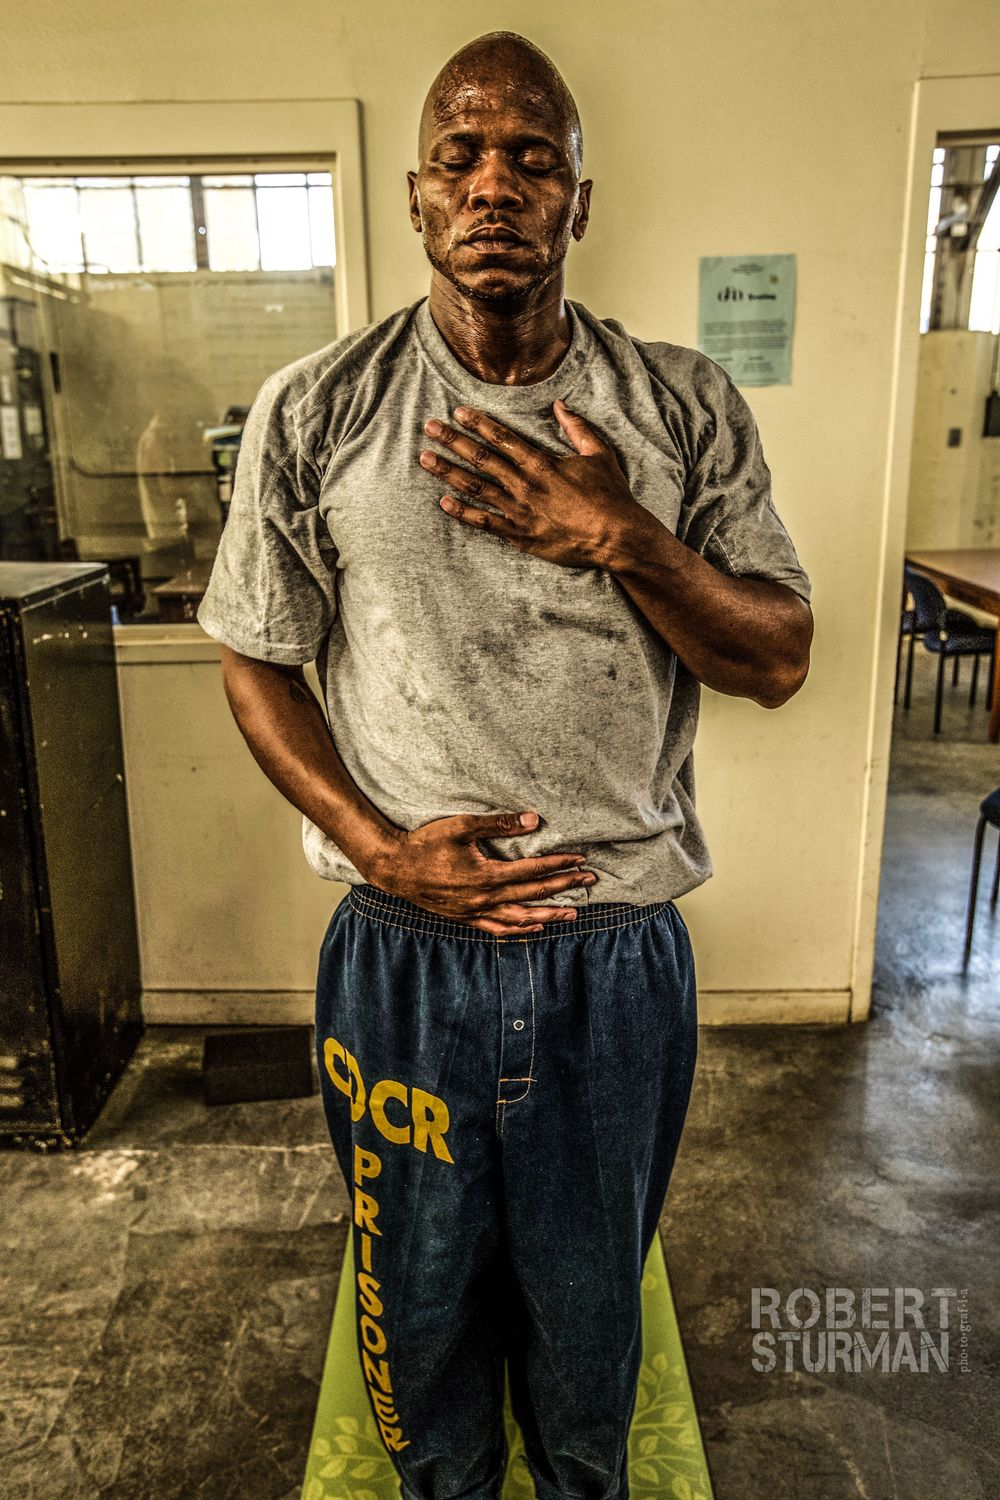 Prison Yoga Is Helping Inmates Transcend Their Cells: James Fox, Founder Of The Prison Yoga Project, On Bringing